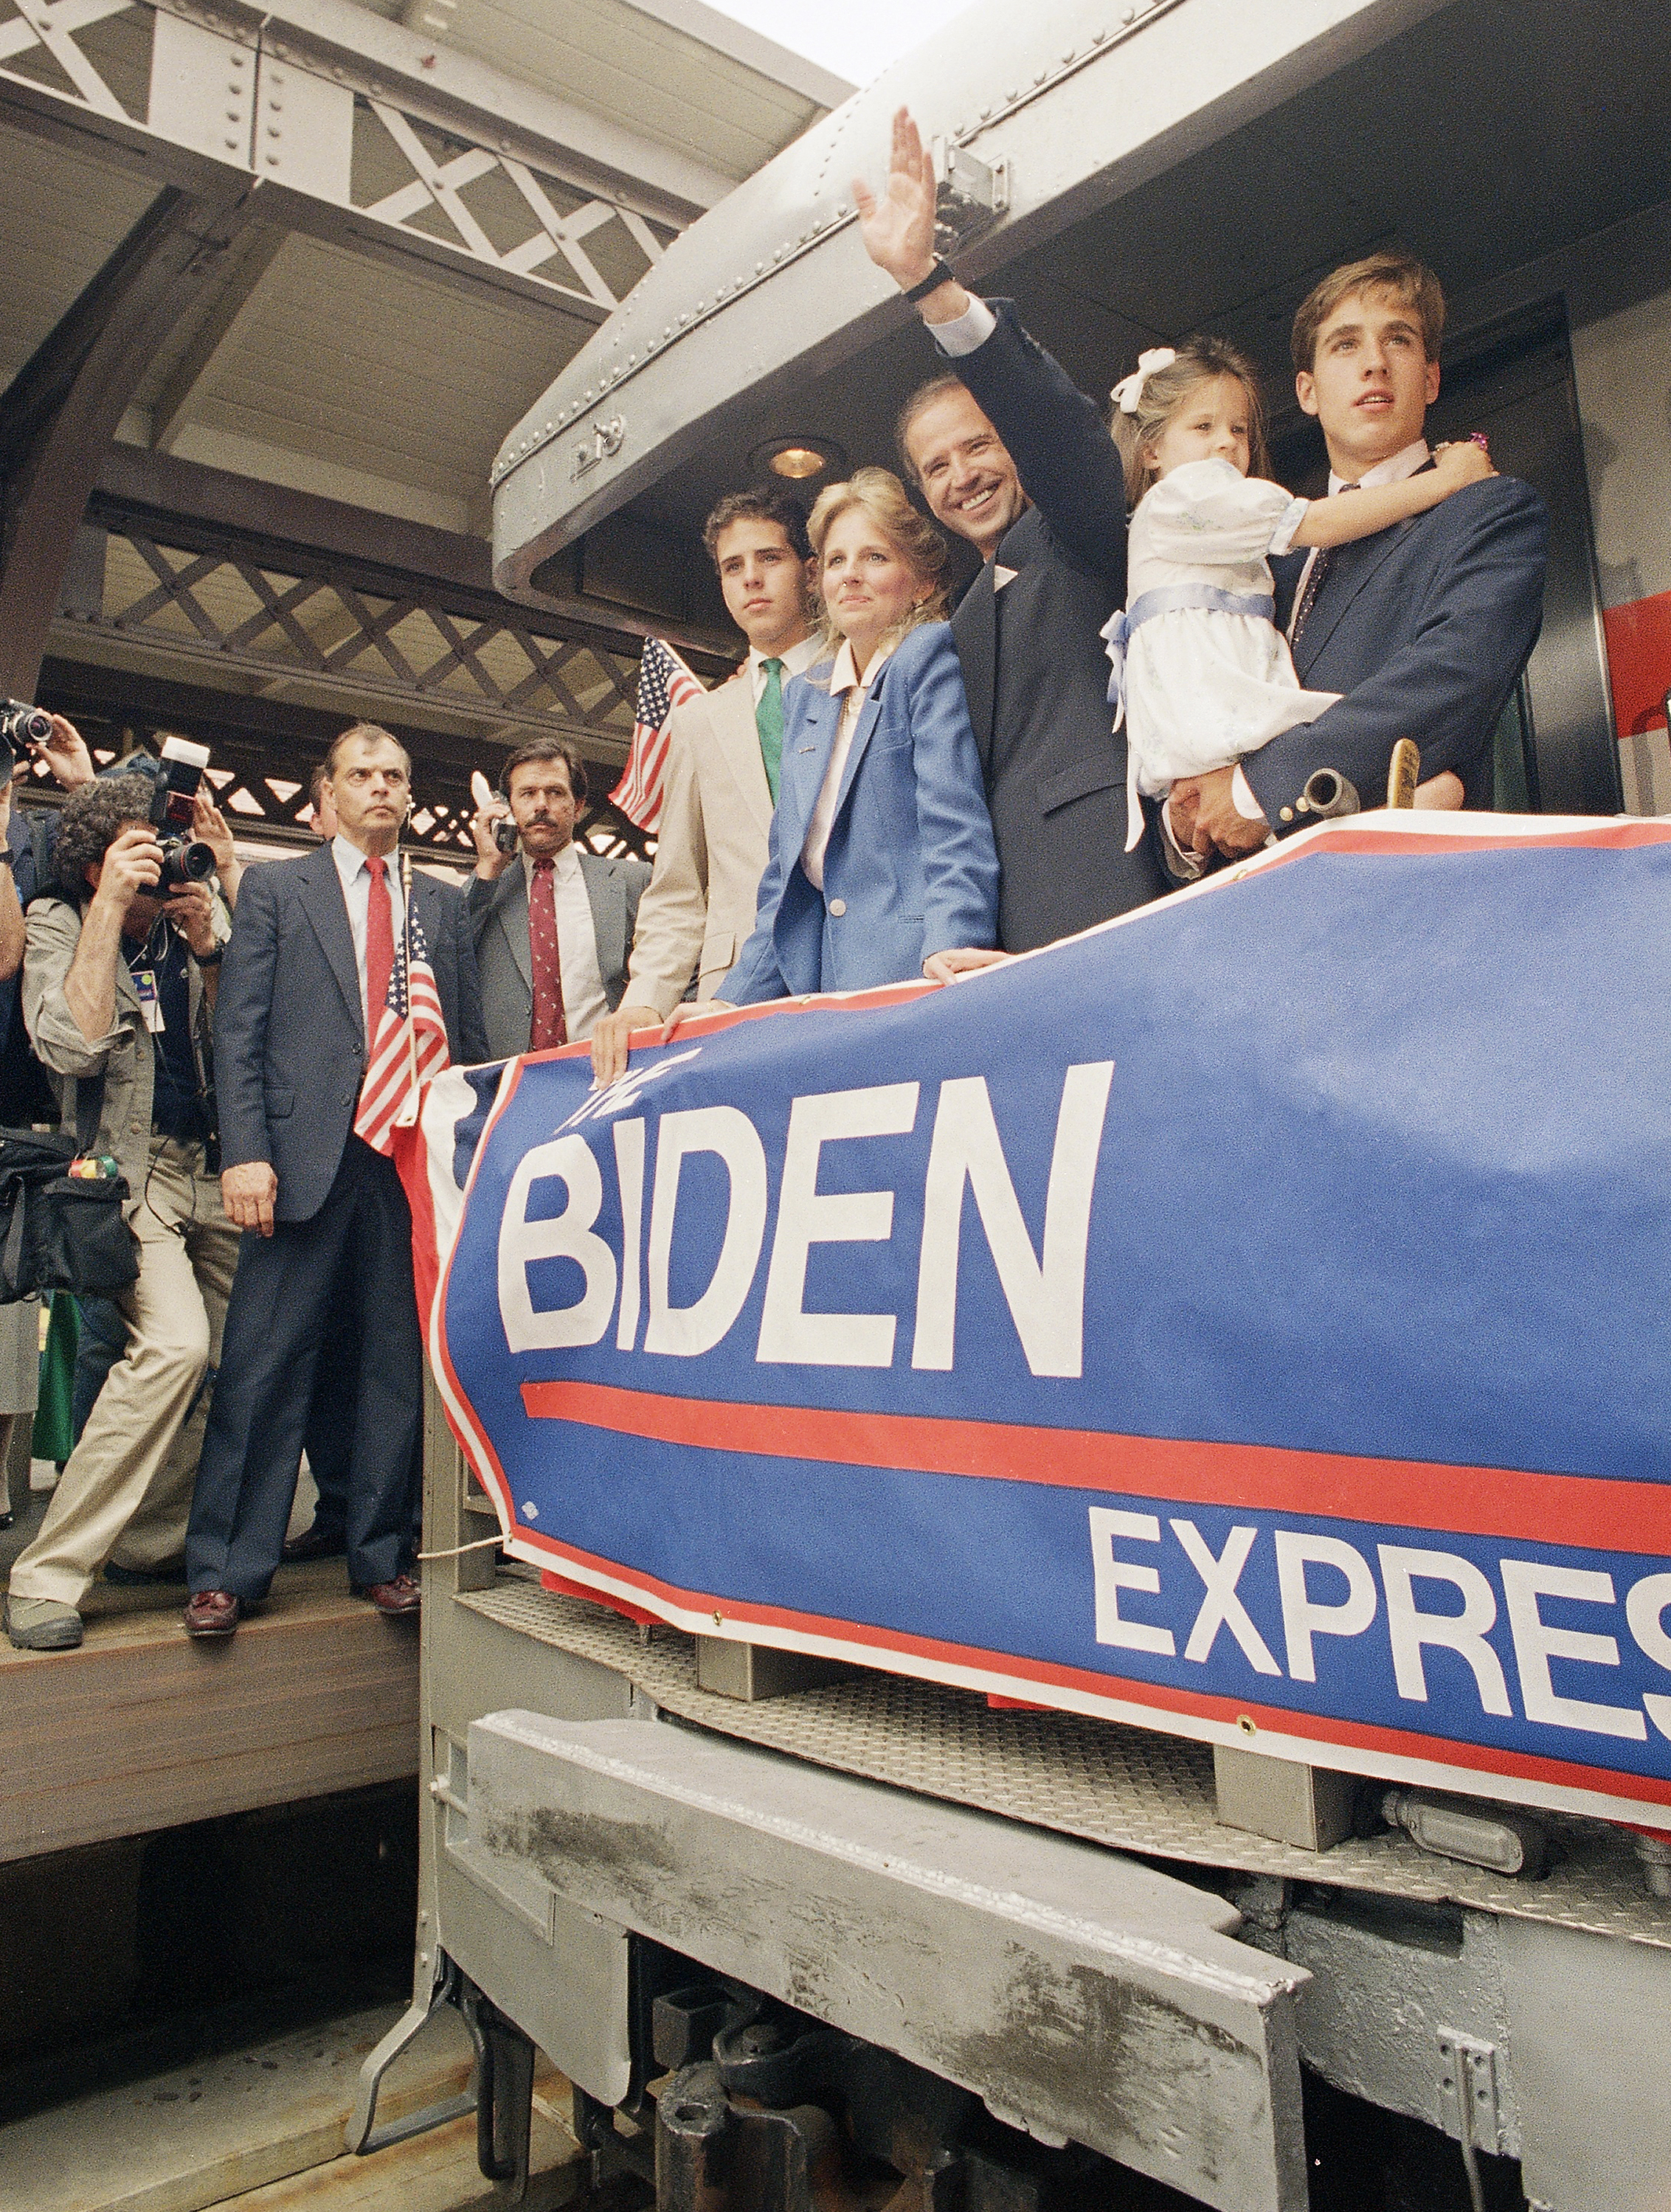 Senator Joseph Biden, (D-Del.), center, waves to a crowd as his train leaves, after he announced his candidacy for President in Wilmington, Del., June 9, 1987. At right, Biden's son, Beau, carries Biden's daughter Ashley. Next to Biden is his wife, Jill, and son Hunter.